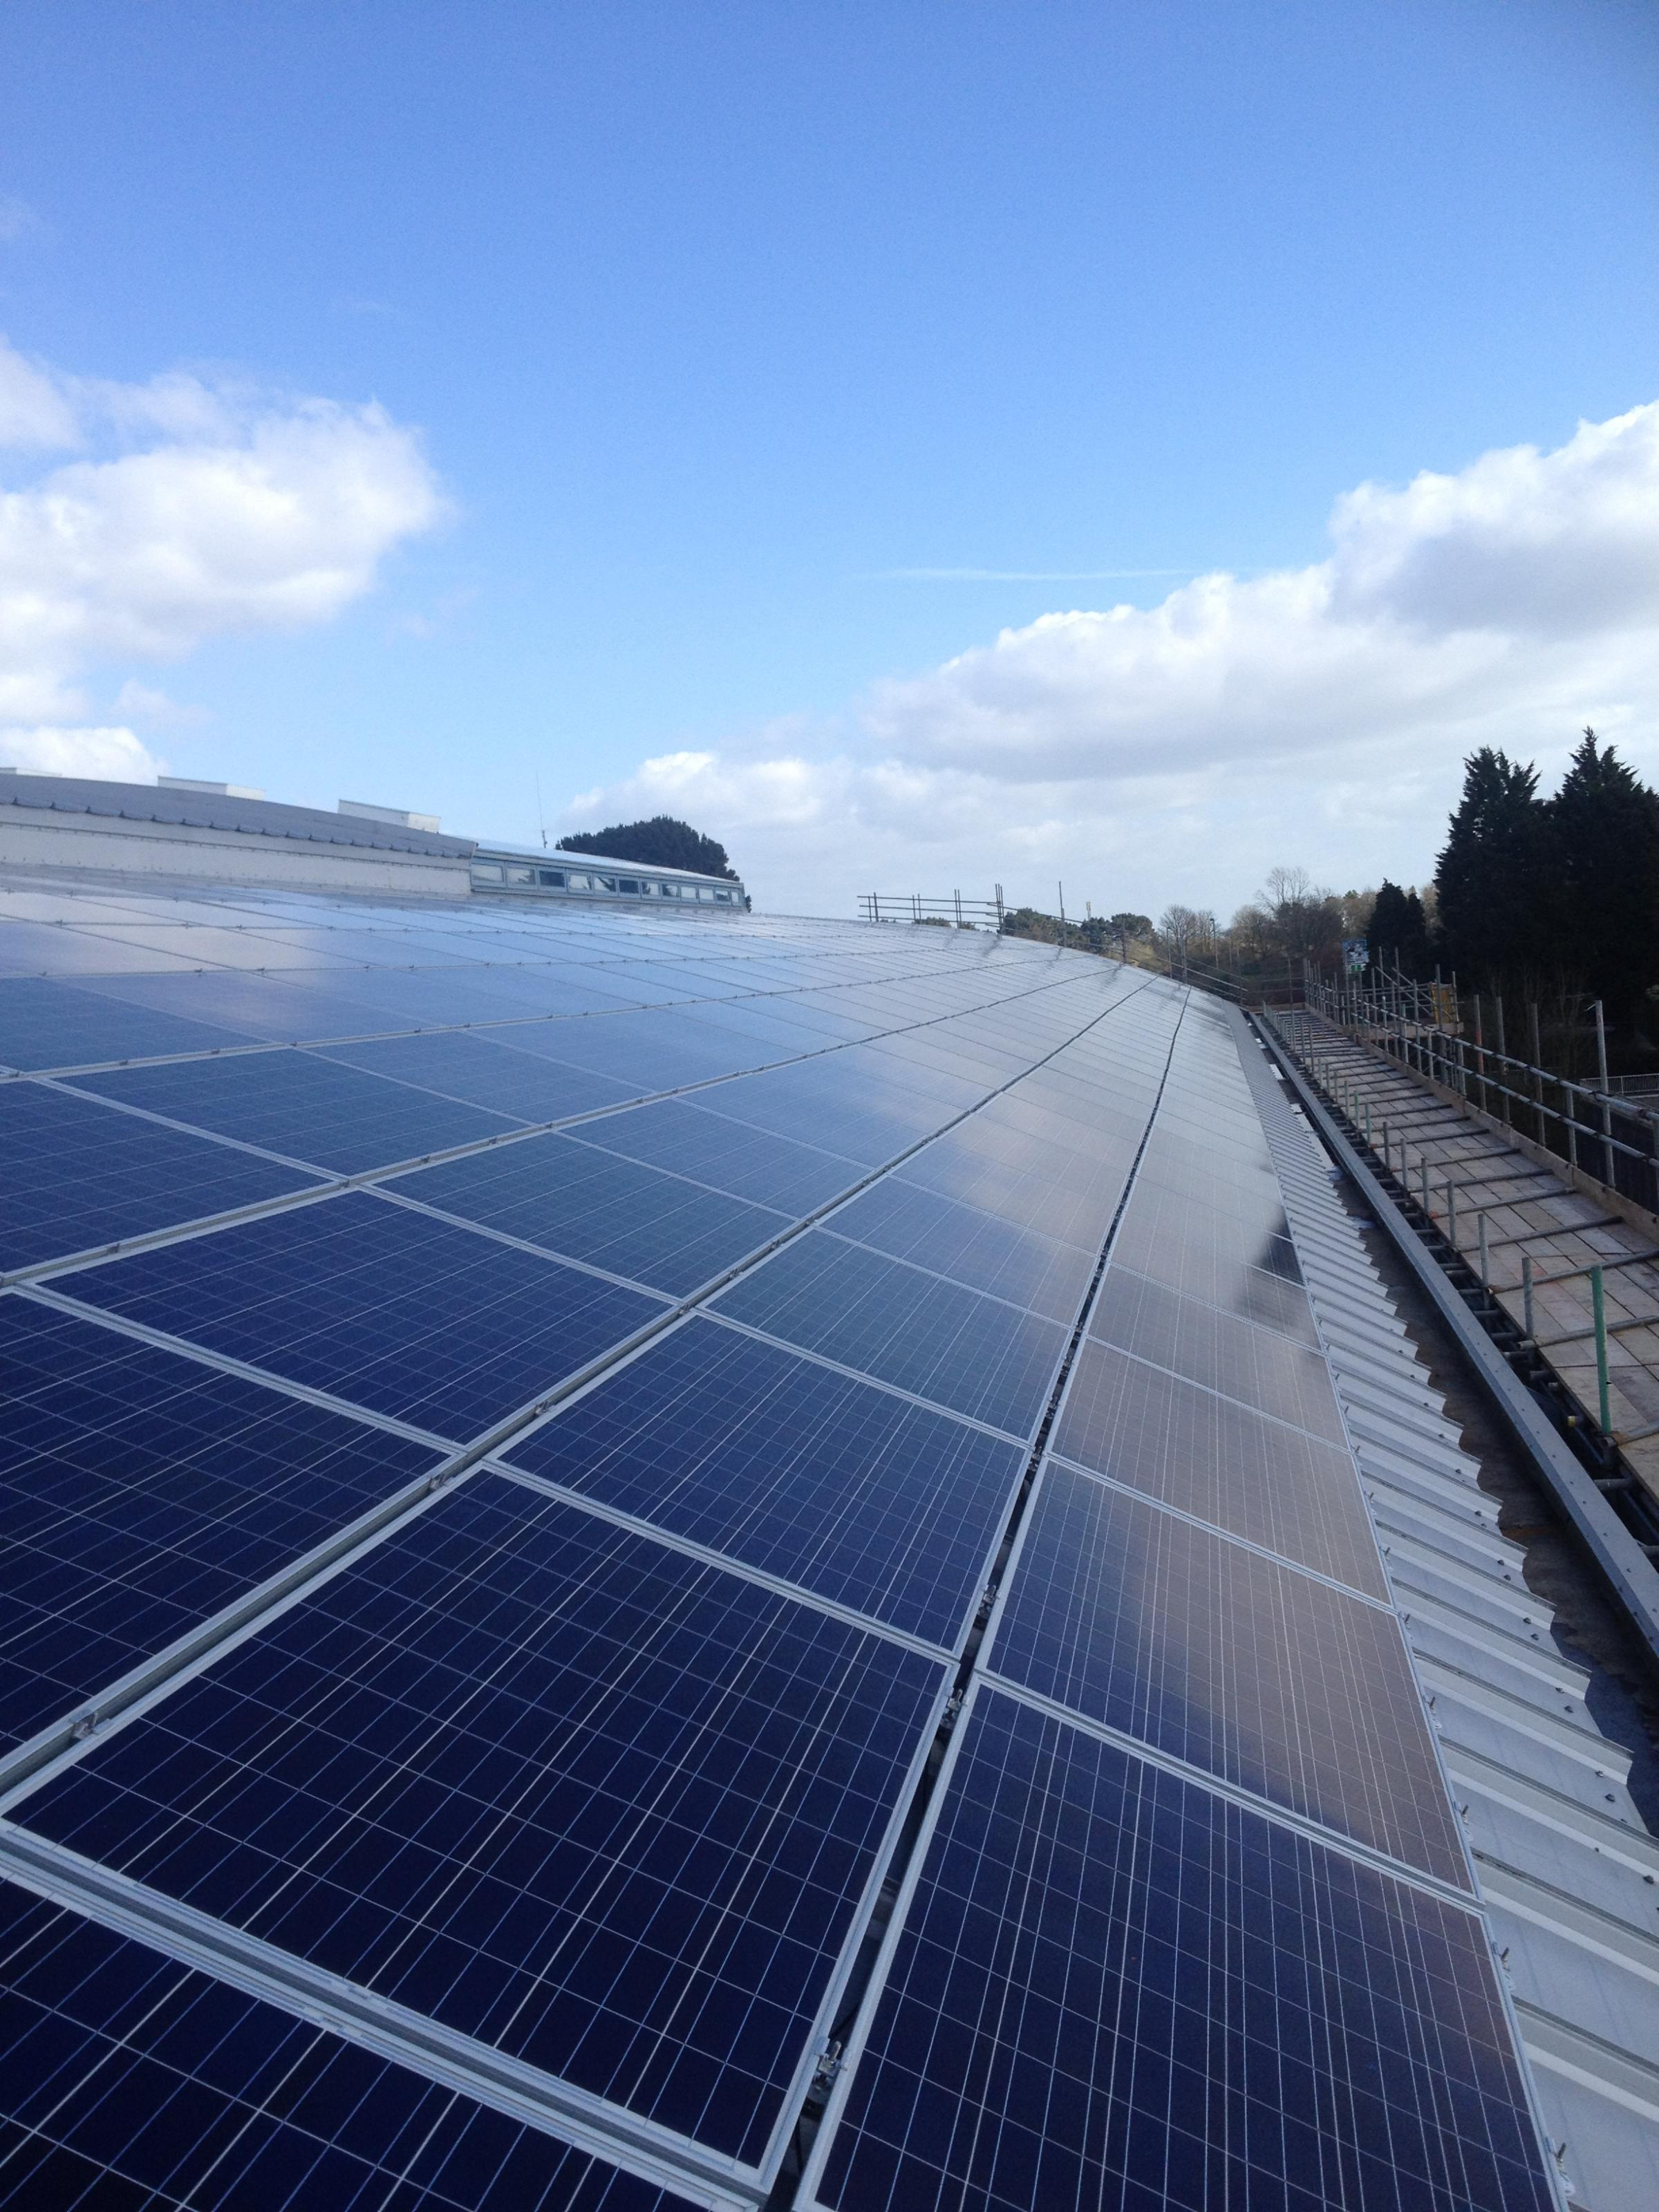 Low carbon Hub says schools and business buildings should have solar panels